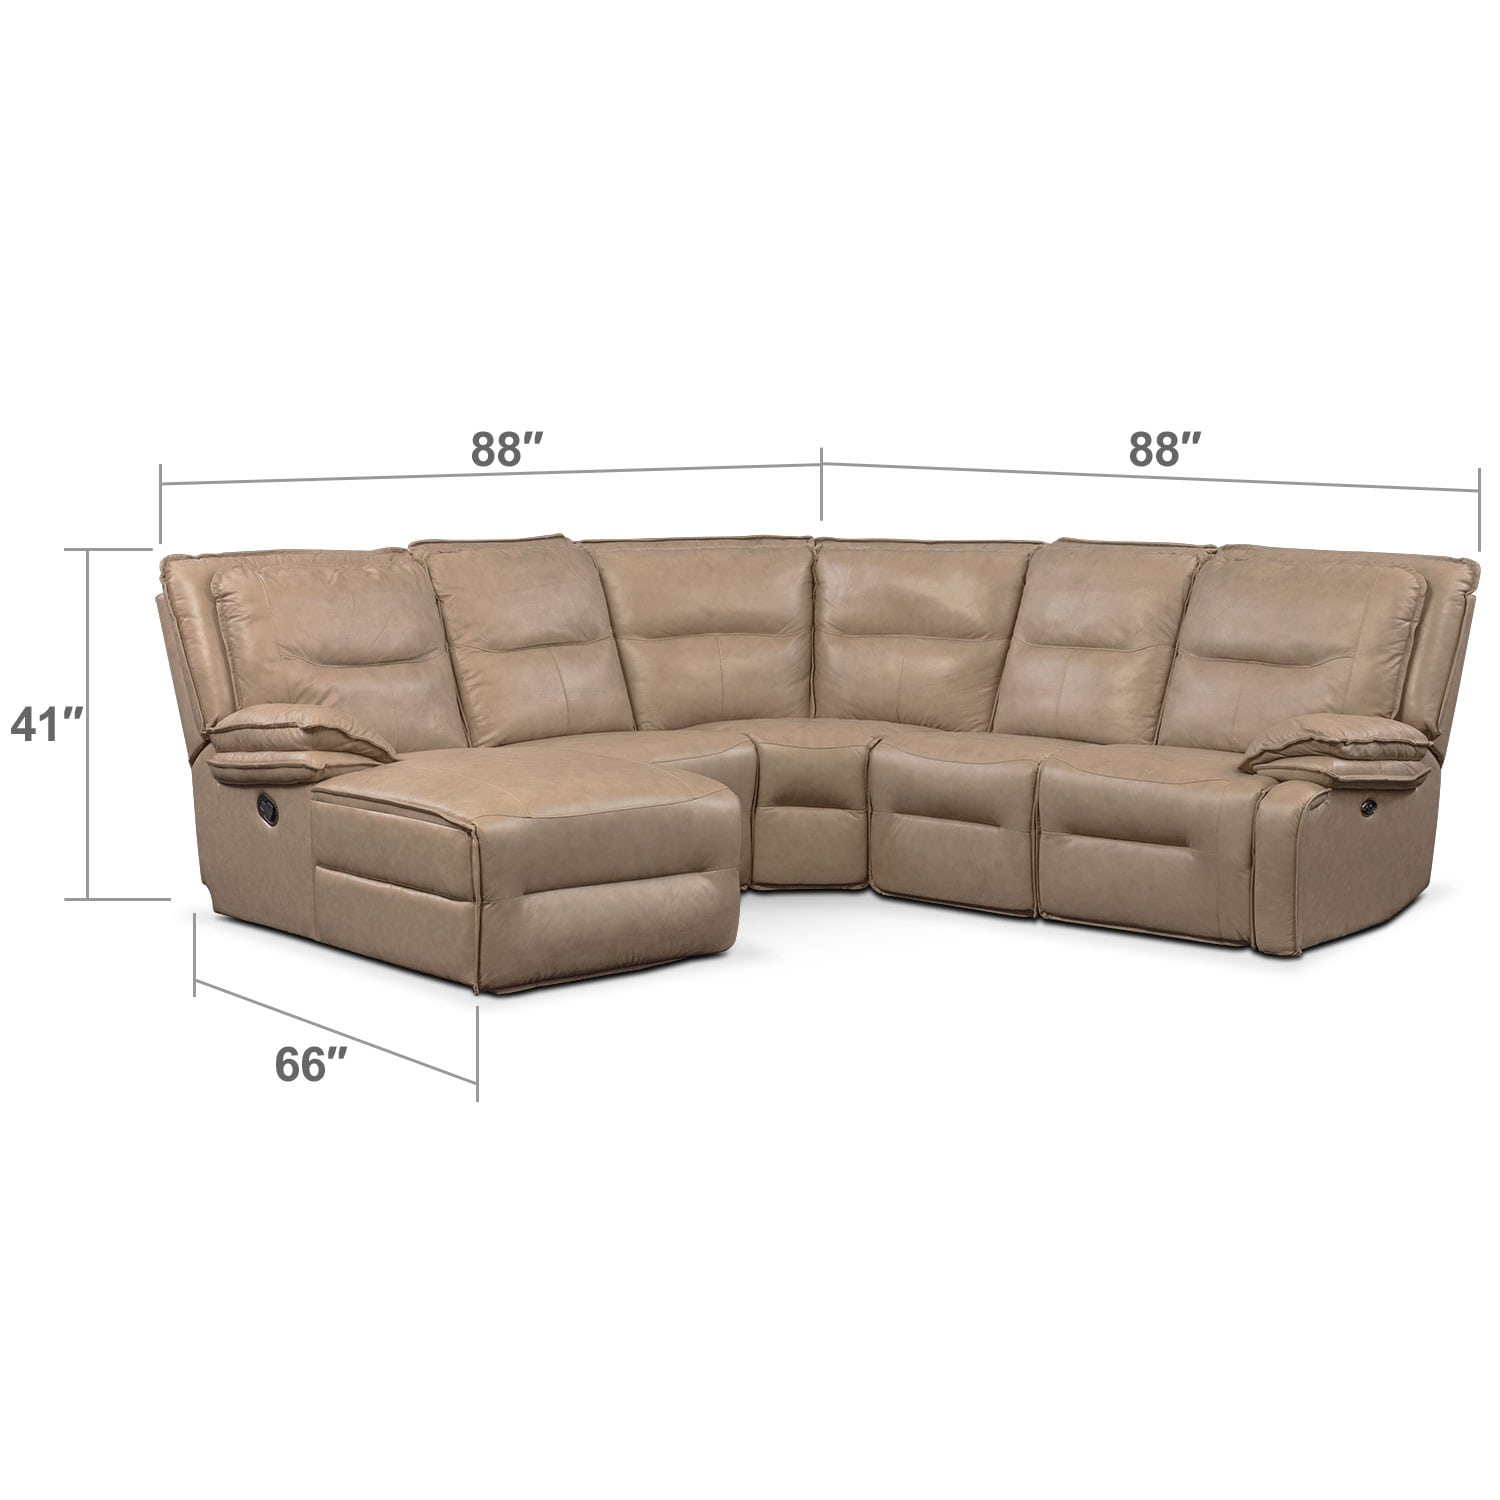 Living Room Furniture - Nikki 5-Piece Power Reclining Sectional with 1 Recliner and Left-Facing Chaise - Taupe